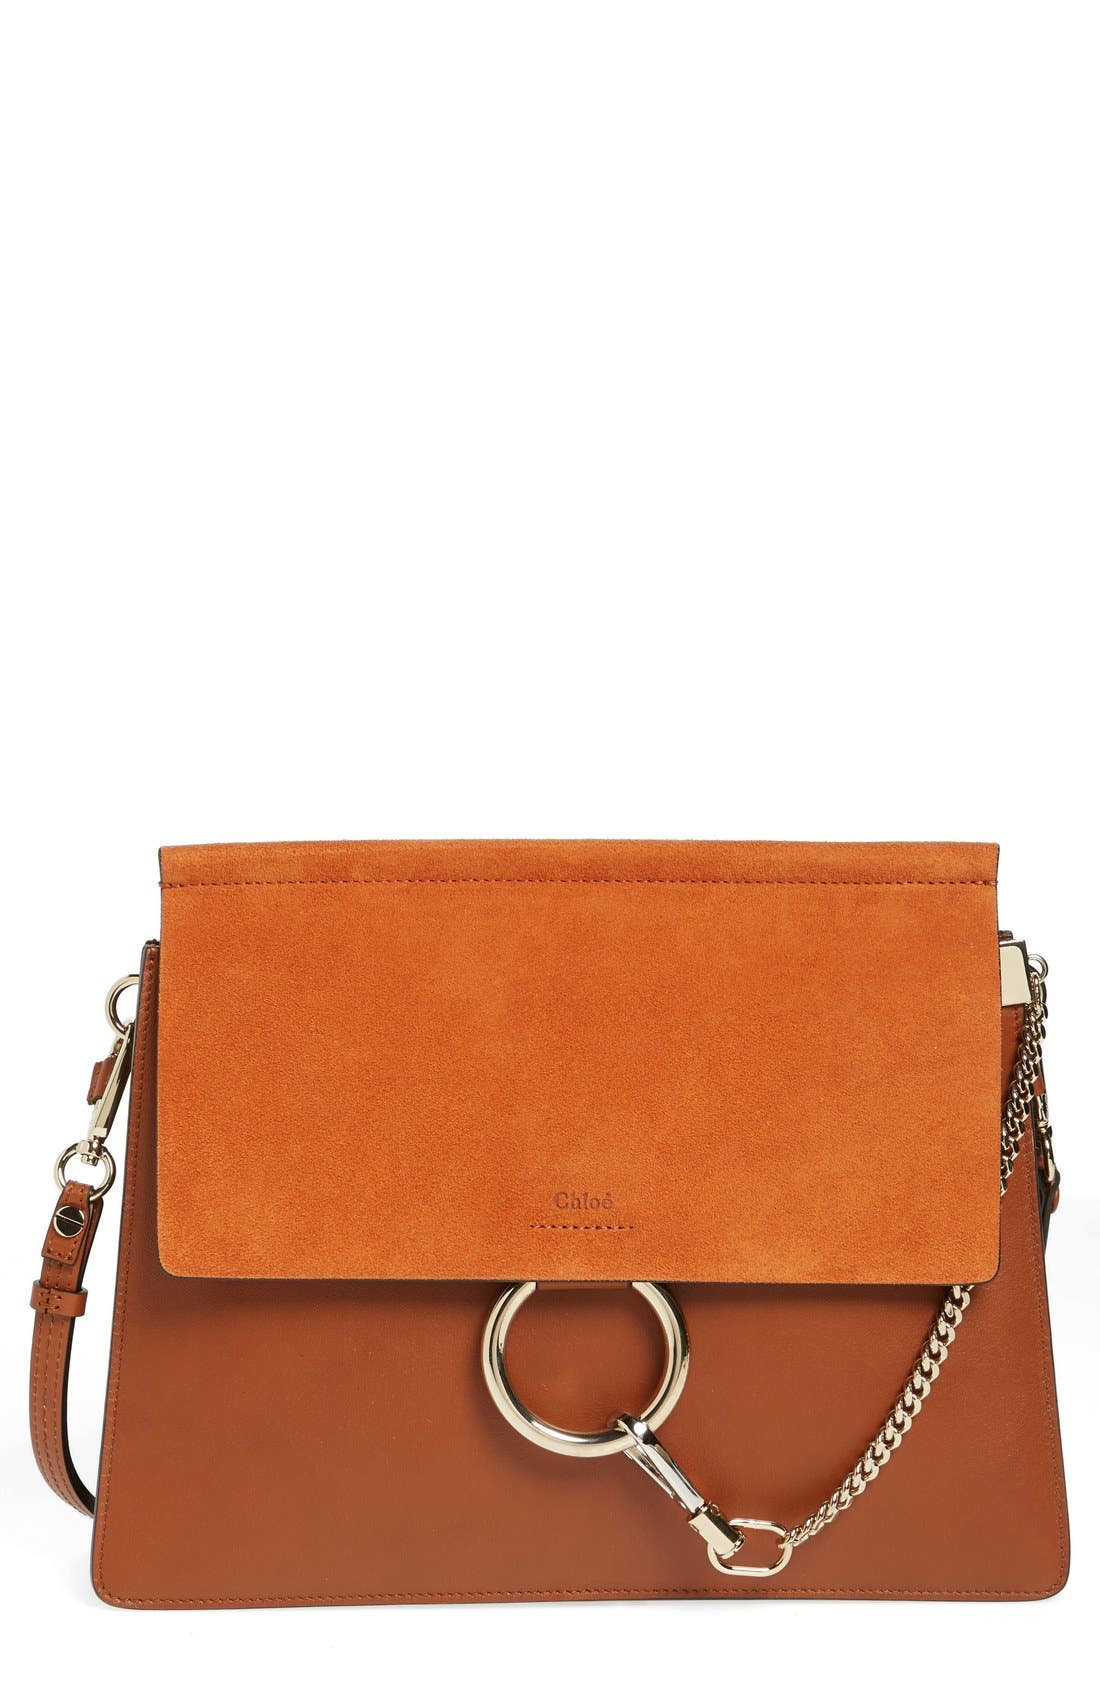 CHLOÉ 'Faye' Leather & Suede Shoulder Bag, Main, color, CLASSIC TOBACCO